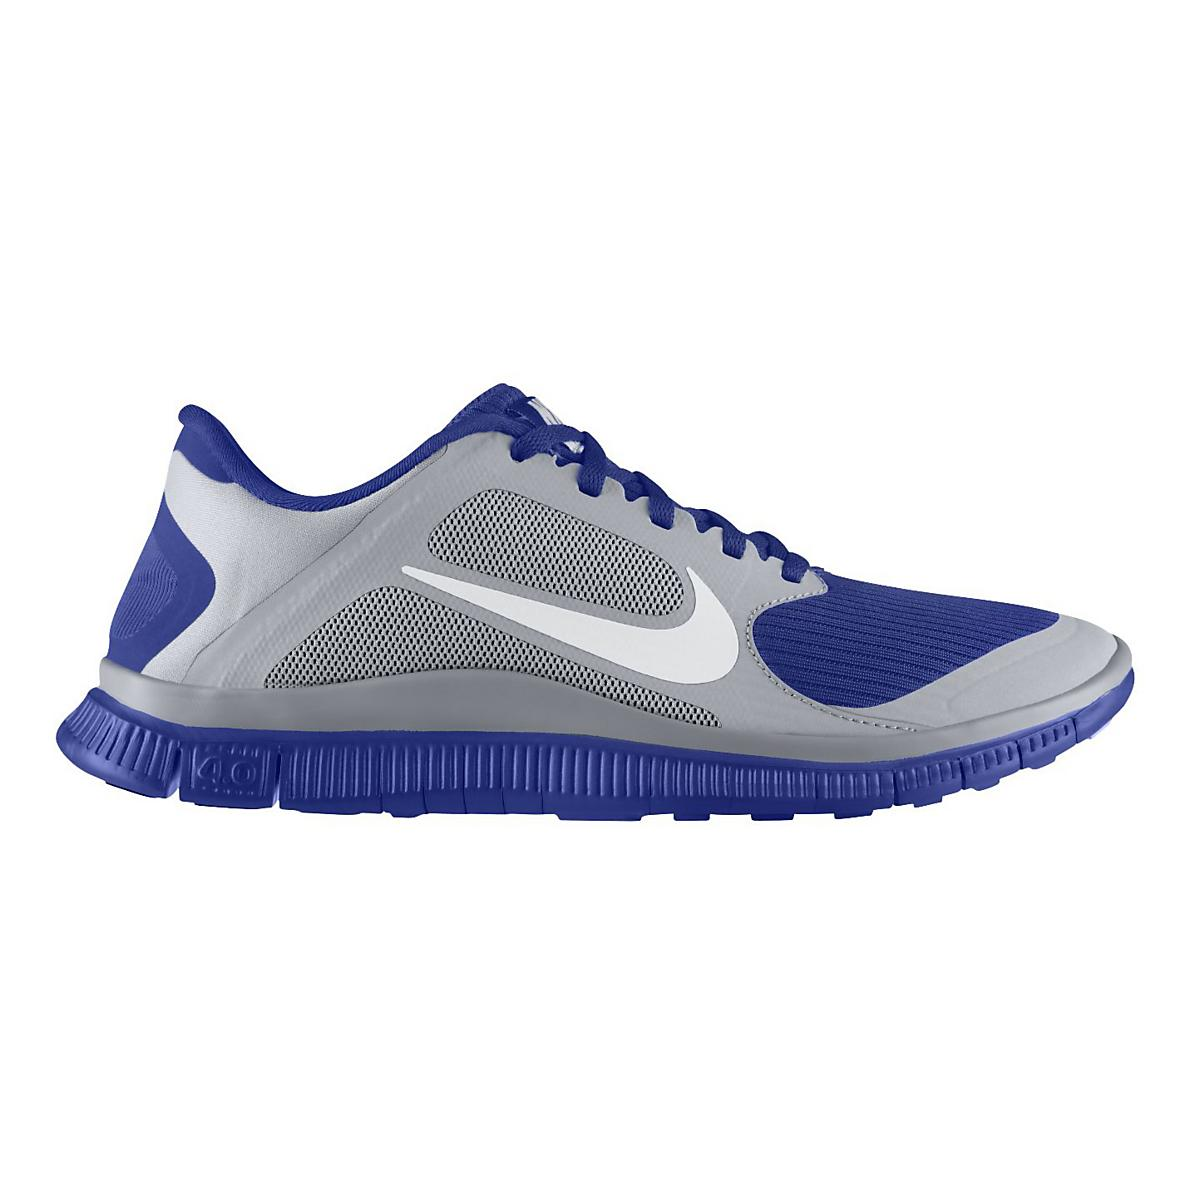 new style ddffc 61aea Mens Nike Free 4.0 v3 Running Shoe at Road Runner Sports